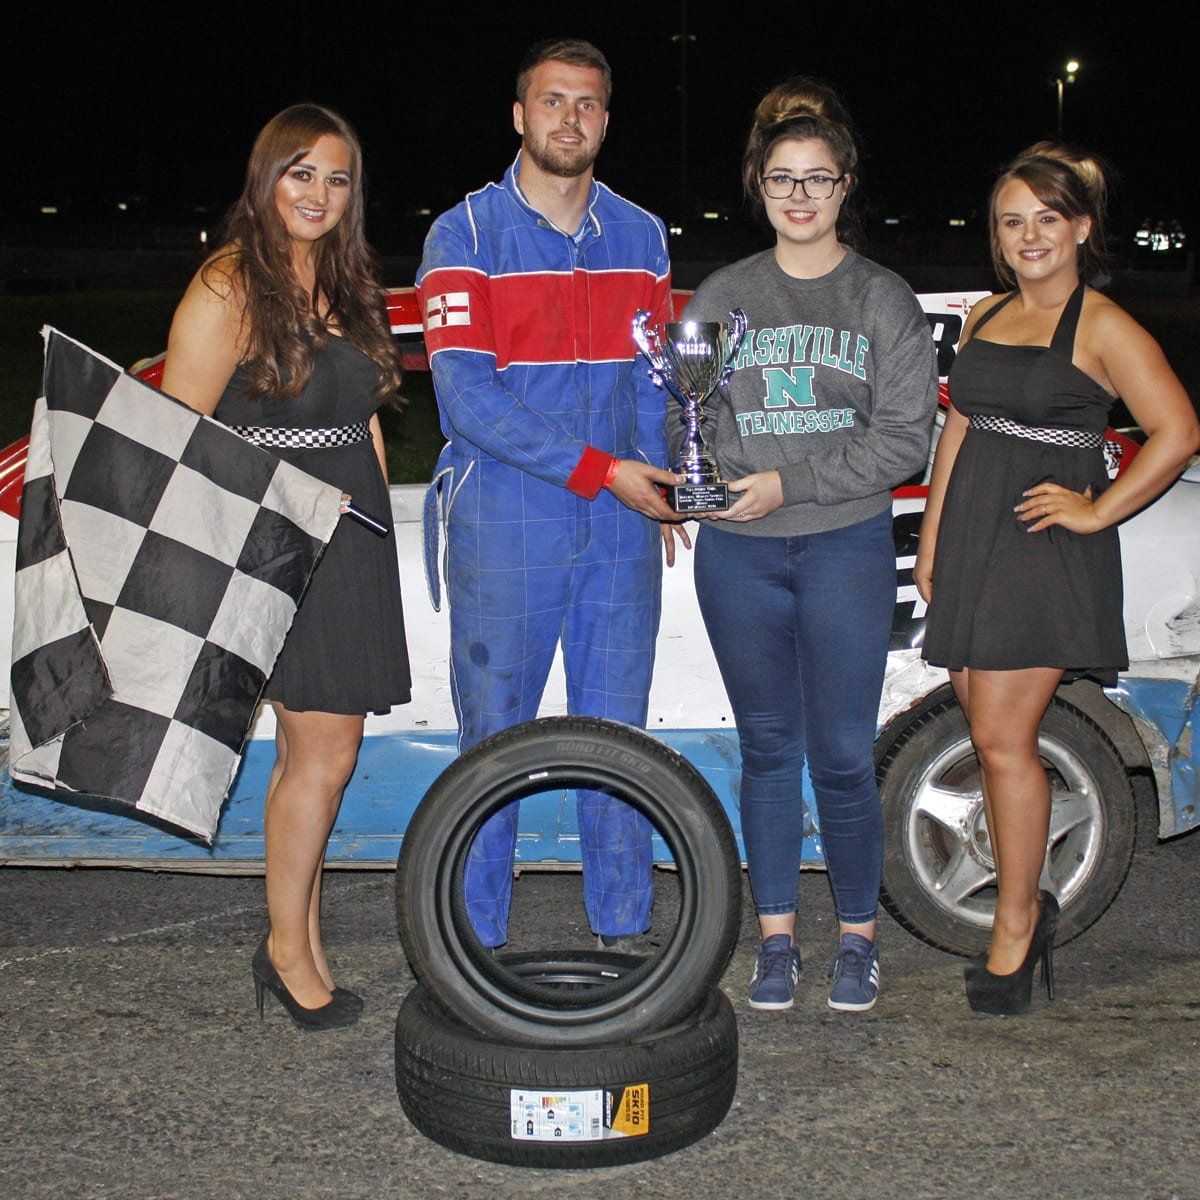 Steven Haugh won the McElmeel McElmeel mobility services final for the ProStocks at Tullyroan on Saturday night